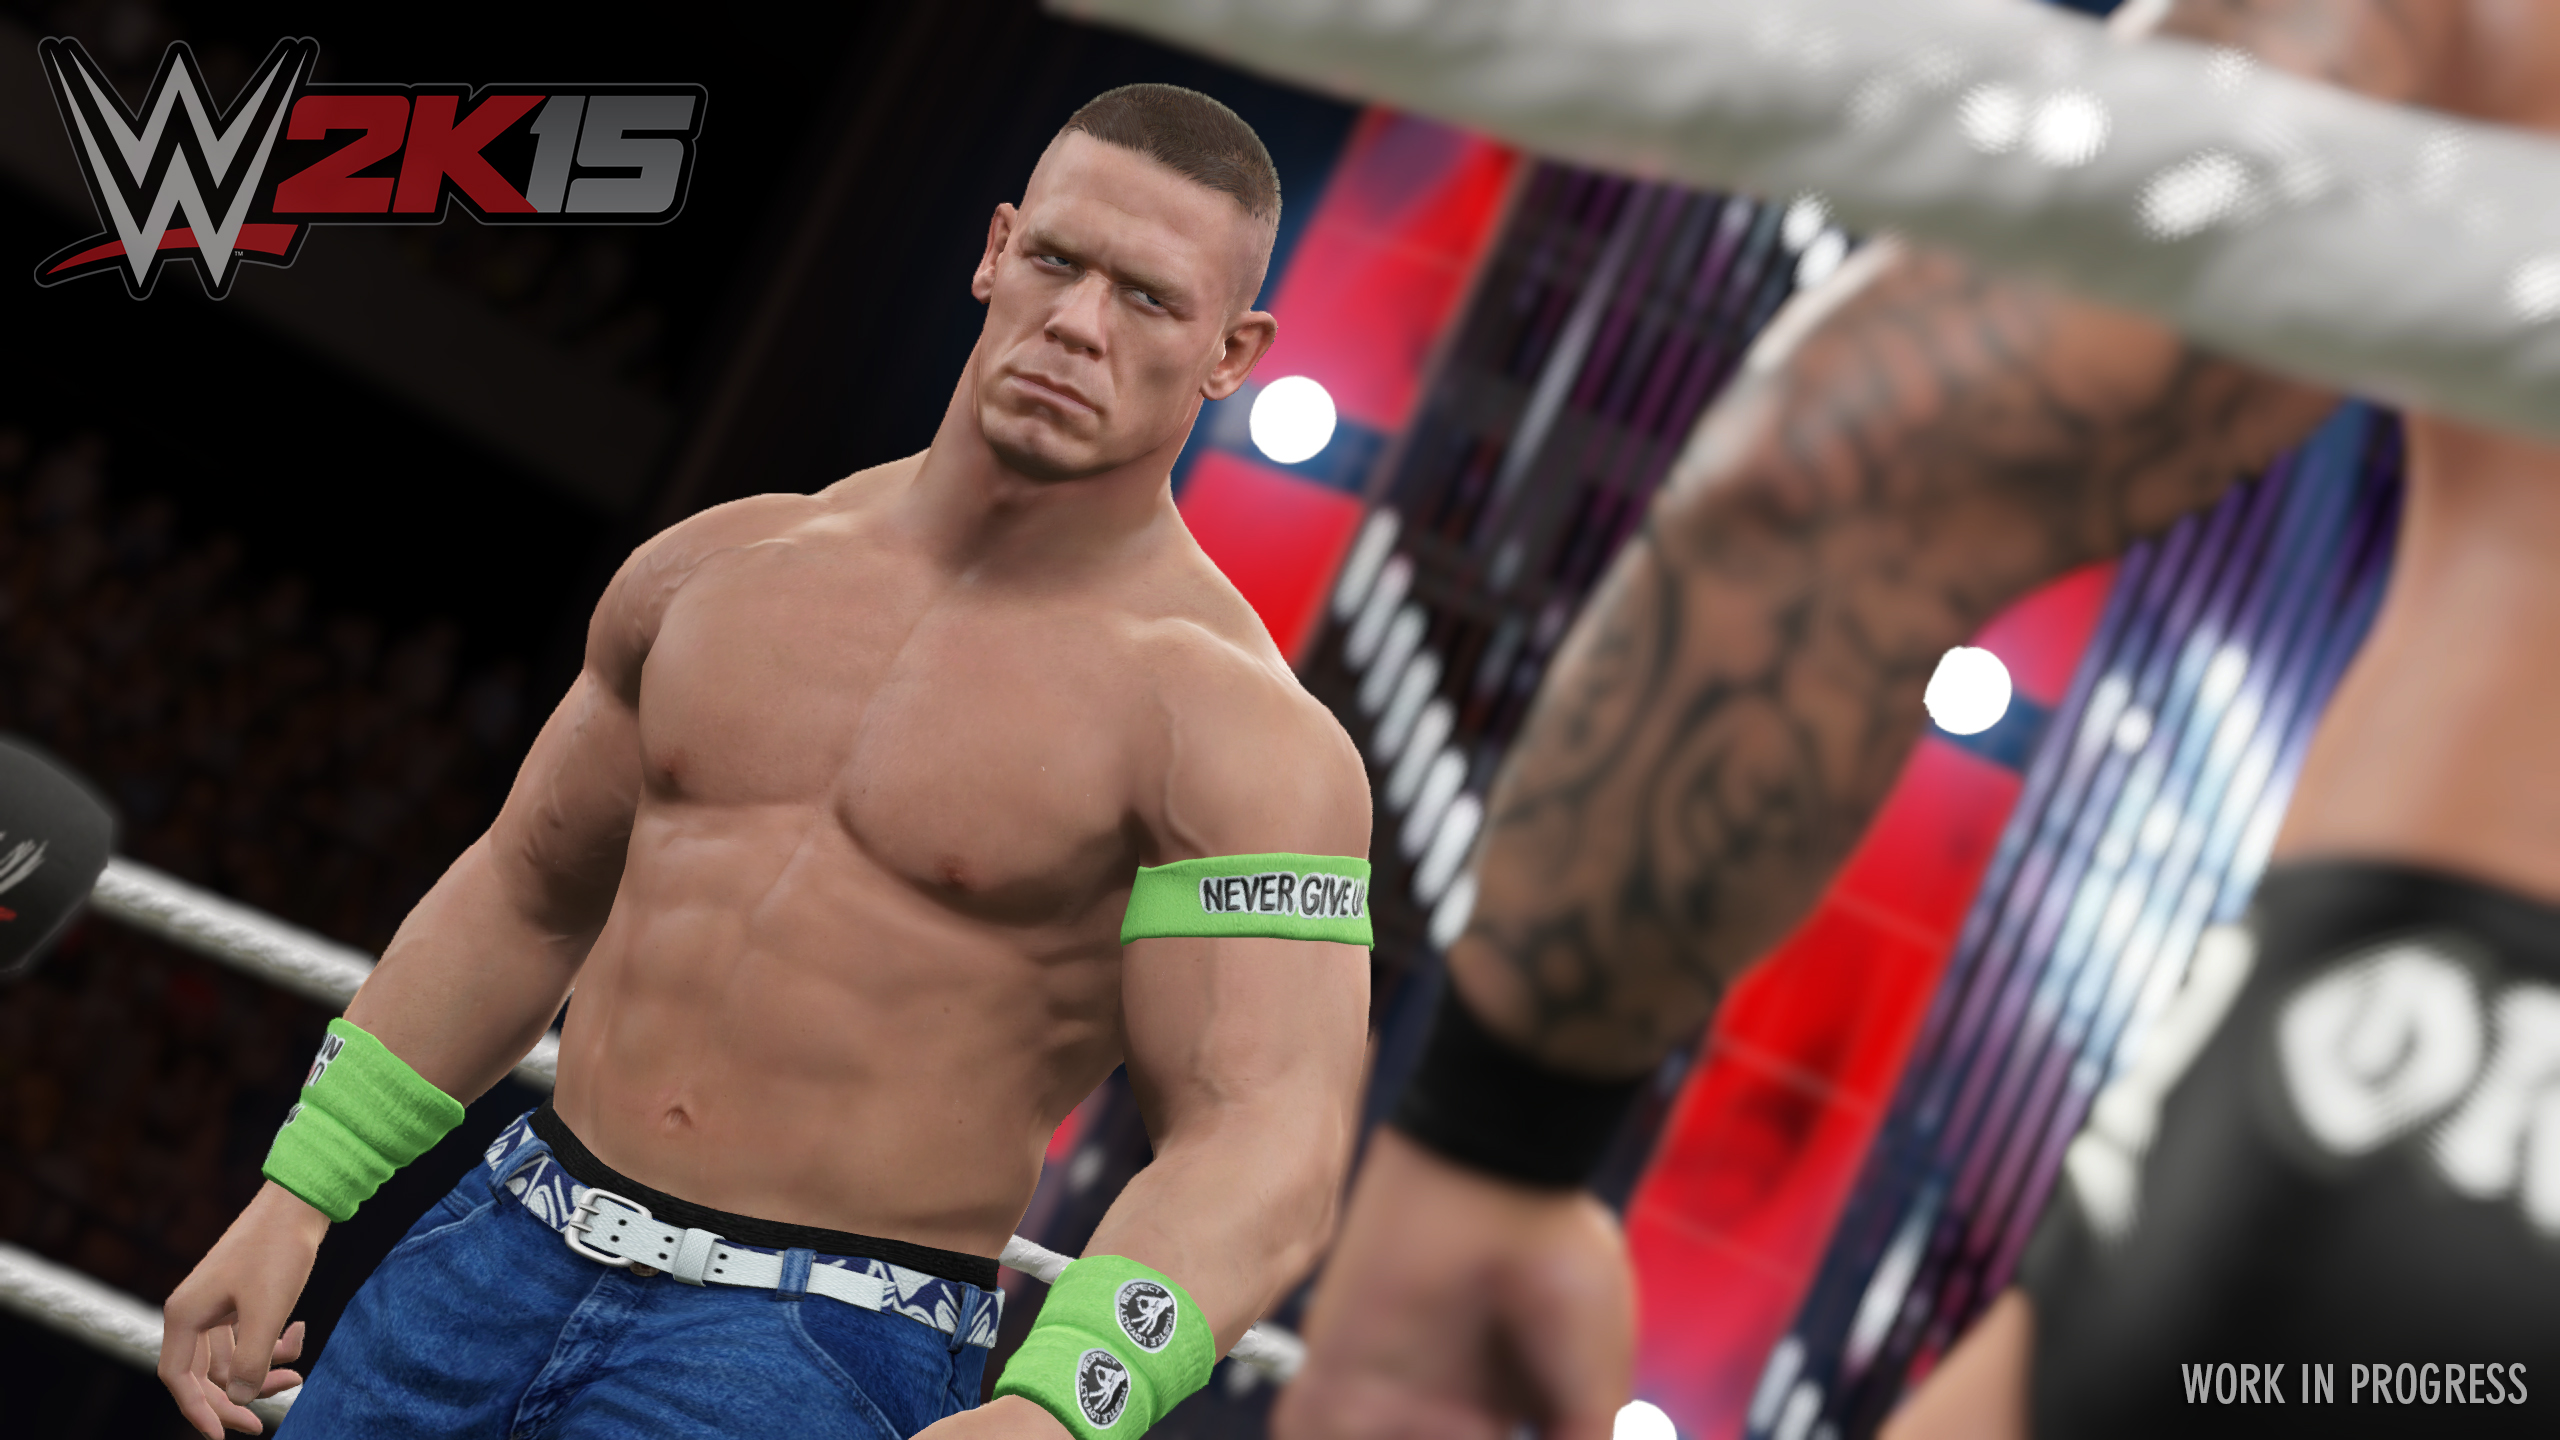 review: wwe 2k15 - in need of an attitude adjustment